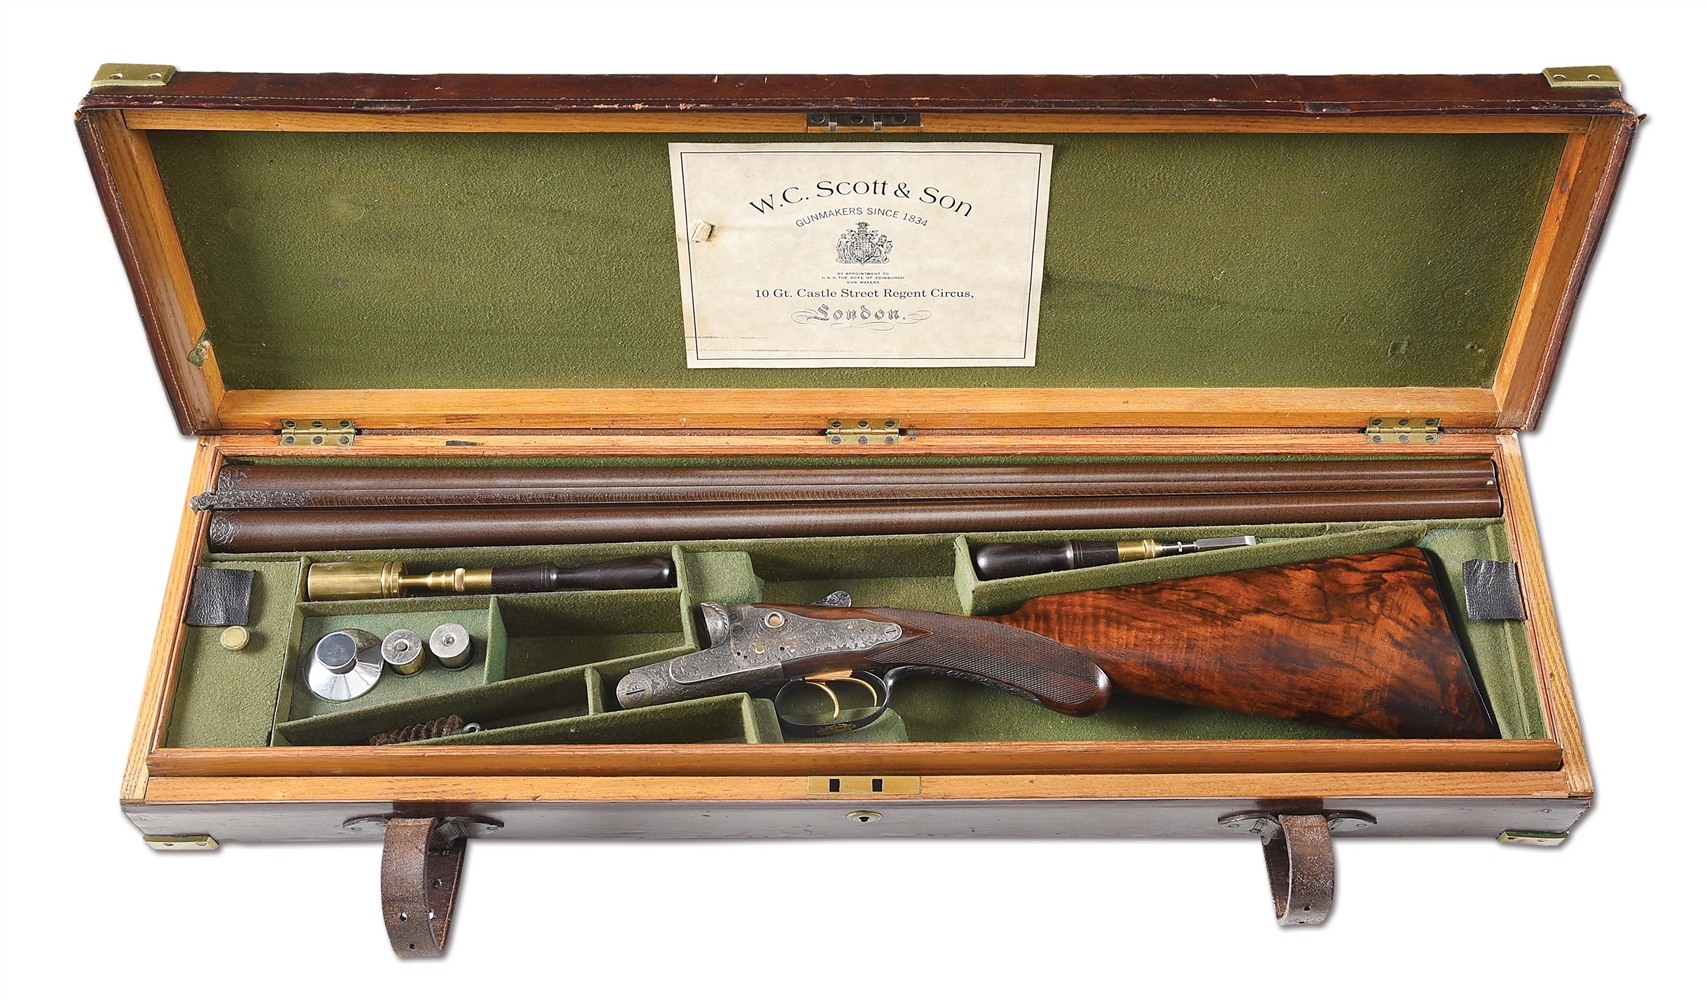 (A) RARE AND DESIRABLE WC SCOTT PREMIER EXTRA SPECIAL SIDE BY SIDE SHOTGUN WITH CASE.